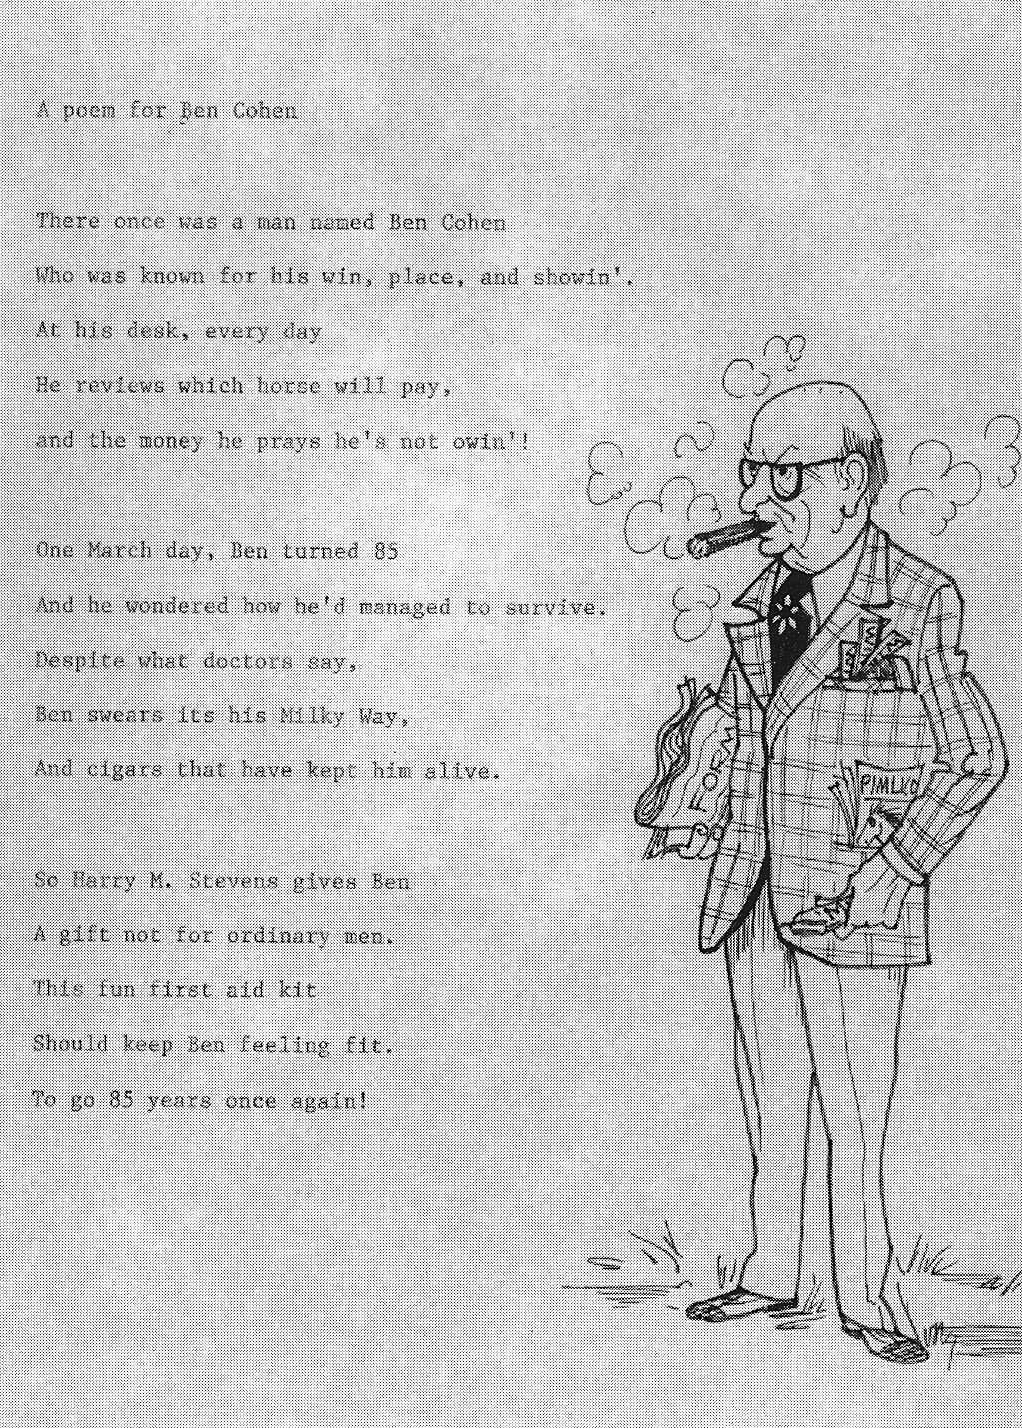 This Poem And Caricature Of Ben Cohen Was Presented To Him By Bill Koras On The